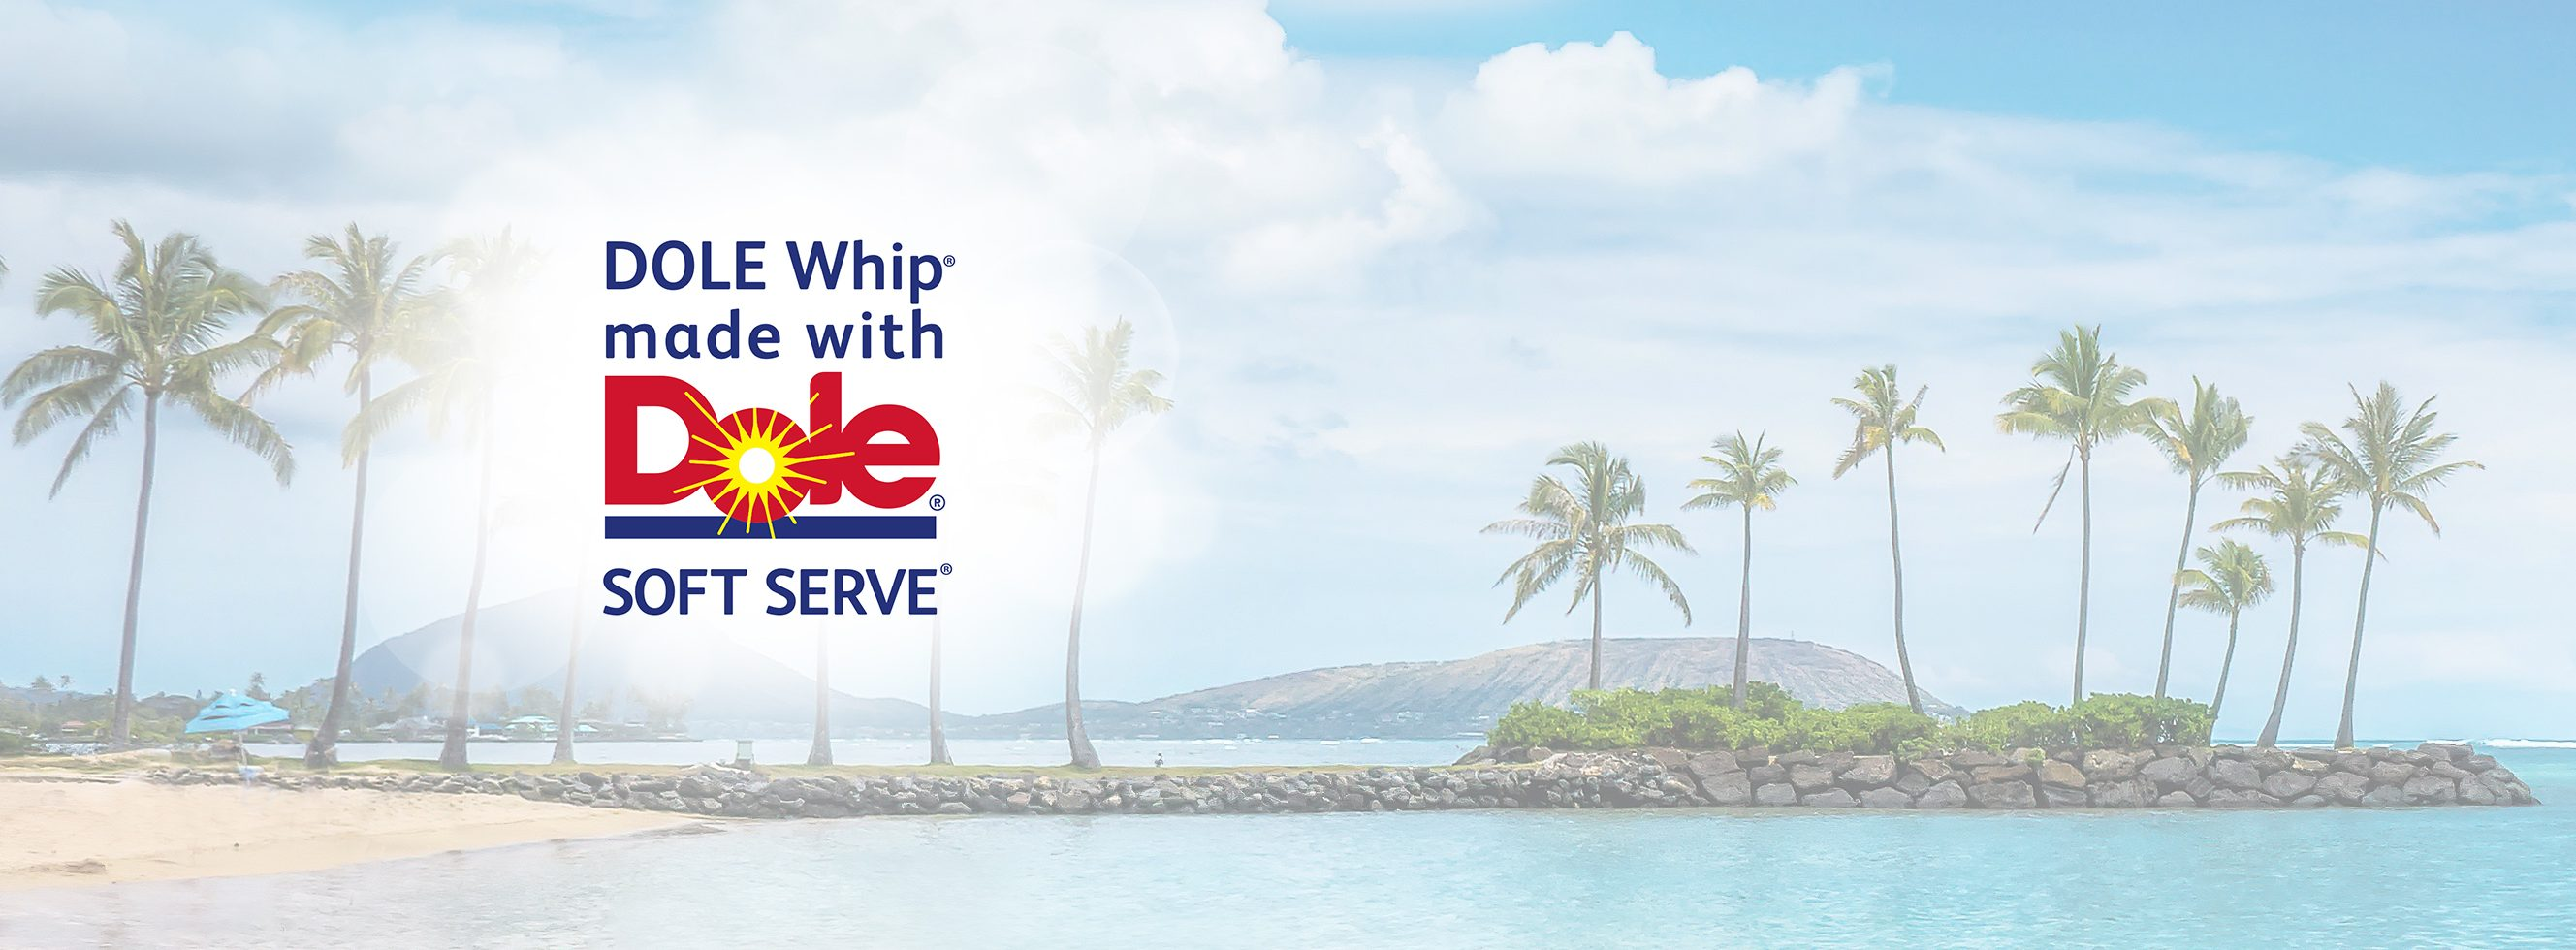 DOLE SOFT SERVE® Blog